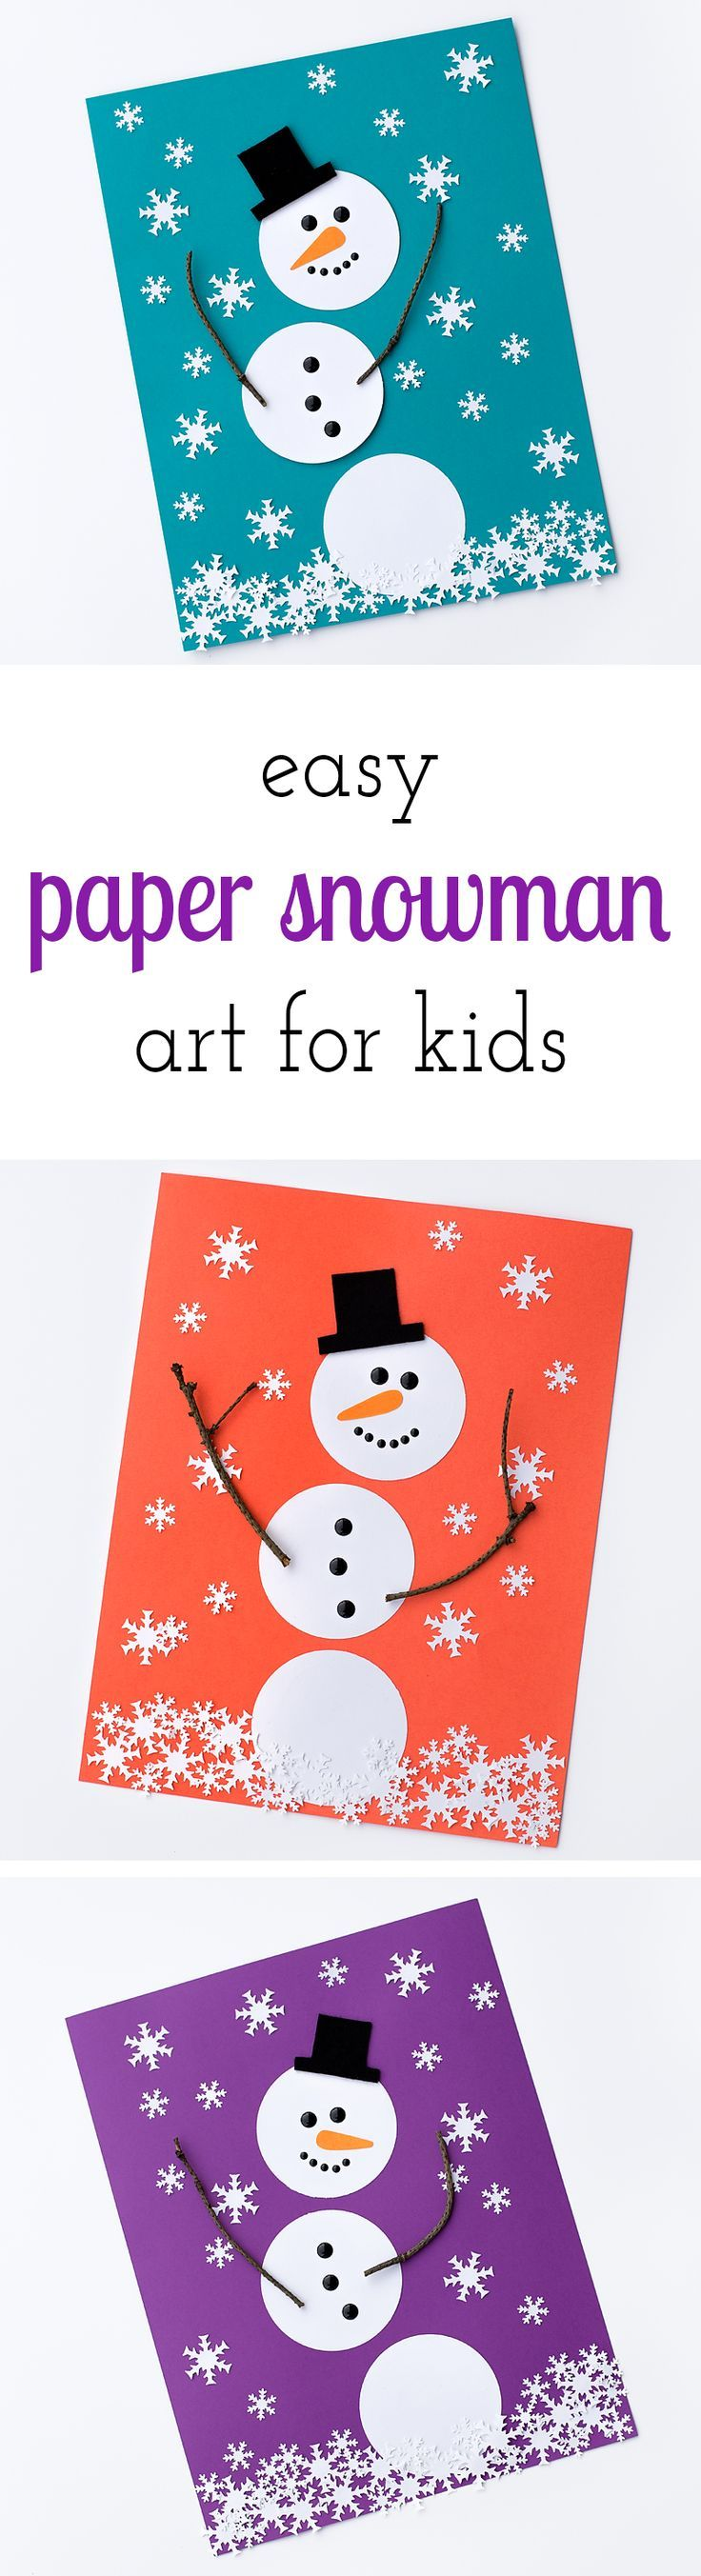 Easy Paper Snowman Art is a simple, fun, and inexpensive winter art activity for kids. Perfect for crafters of all ages! via @HTTP://www.pinterest.com/fireflymudpie/